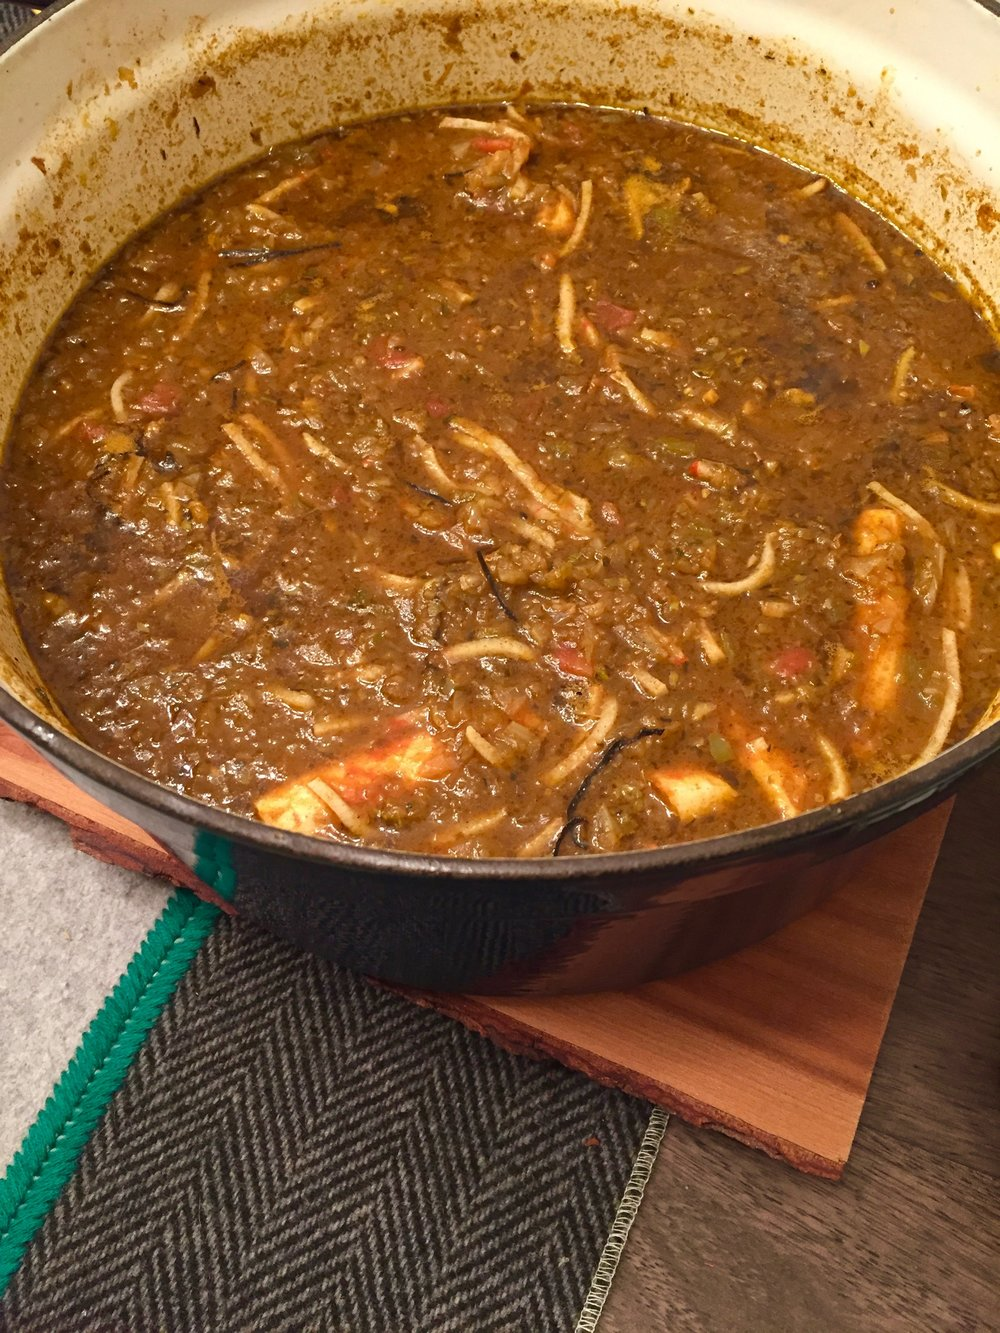 Protein is added to the gumbo base approximately 10 minutes before serving. If you're making a seafood version, allow just enough time to bring meat up to proper temperature without overcooking.